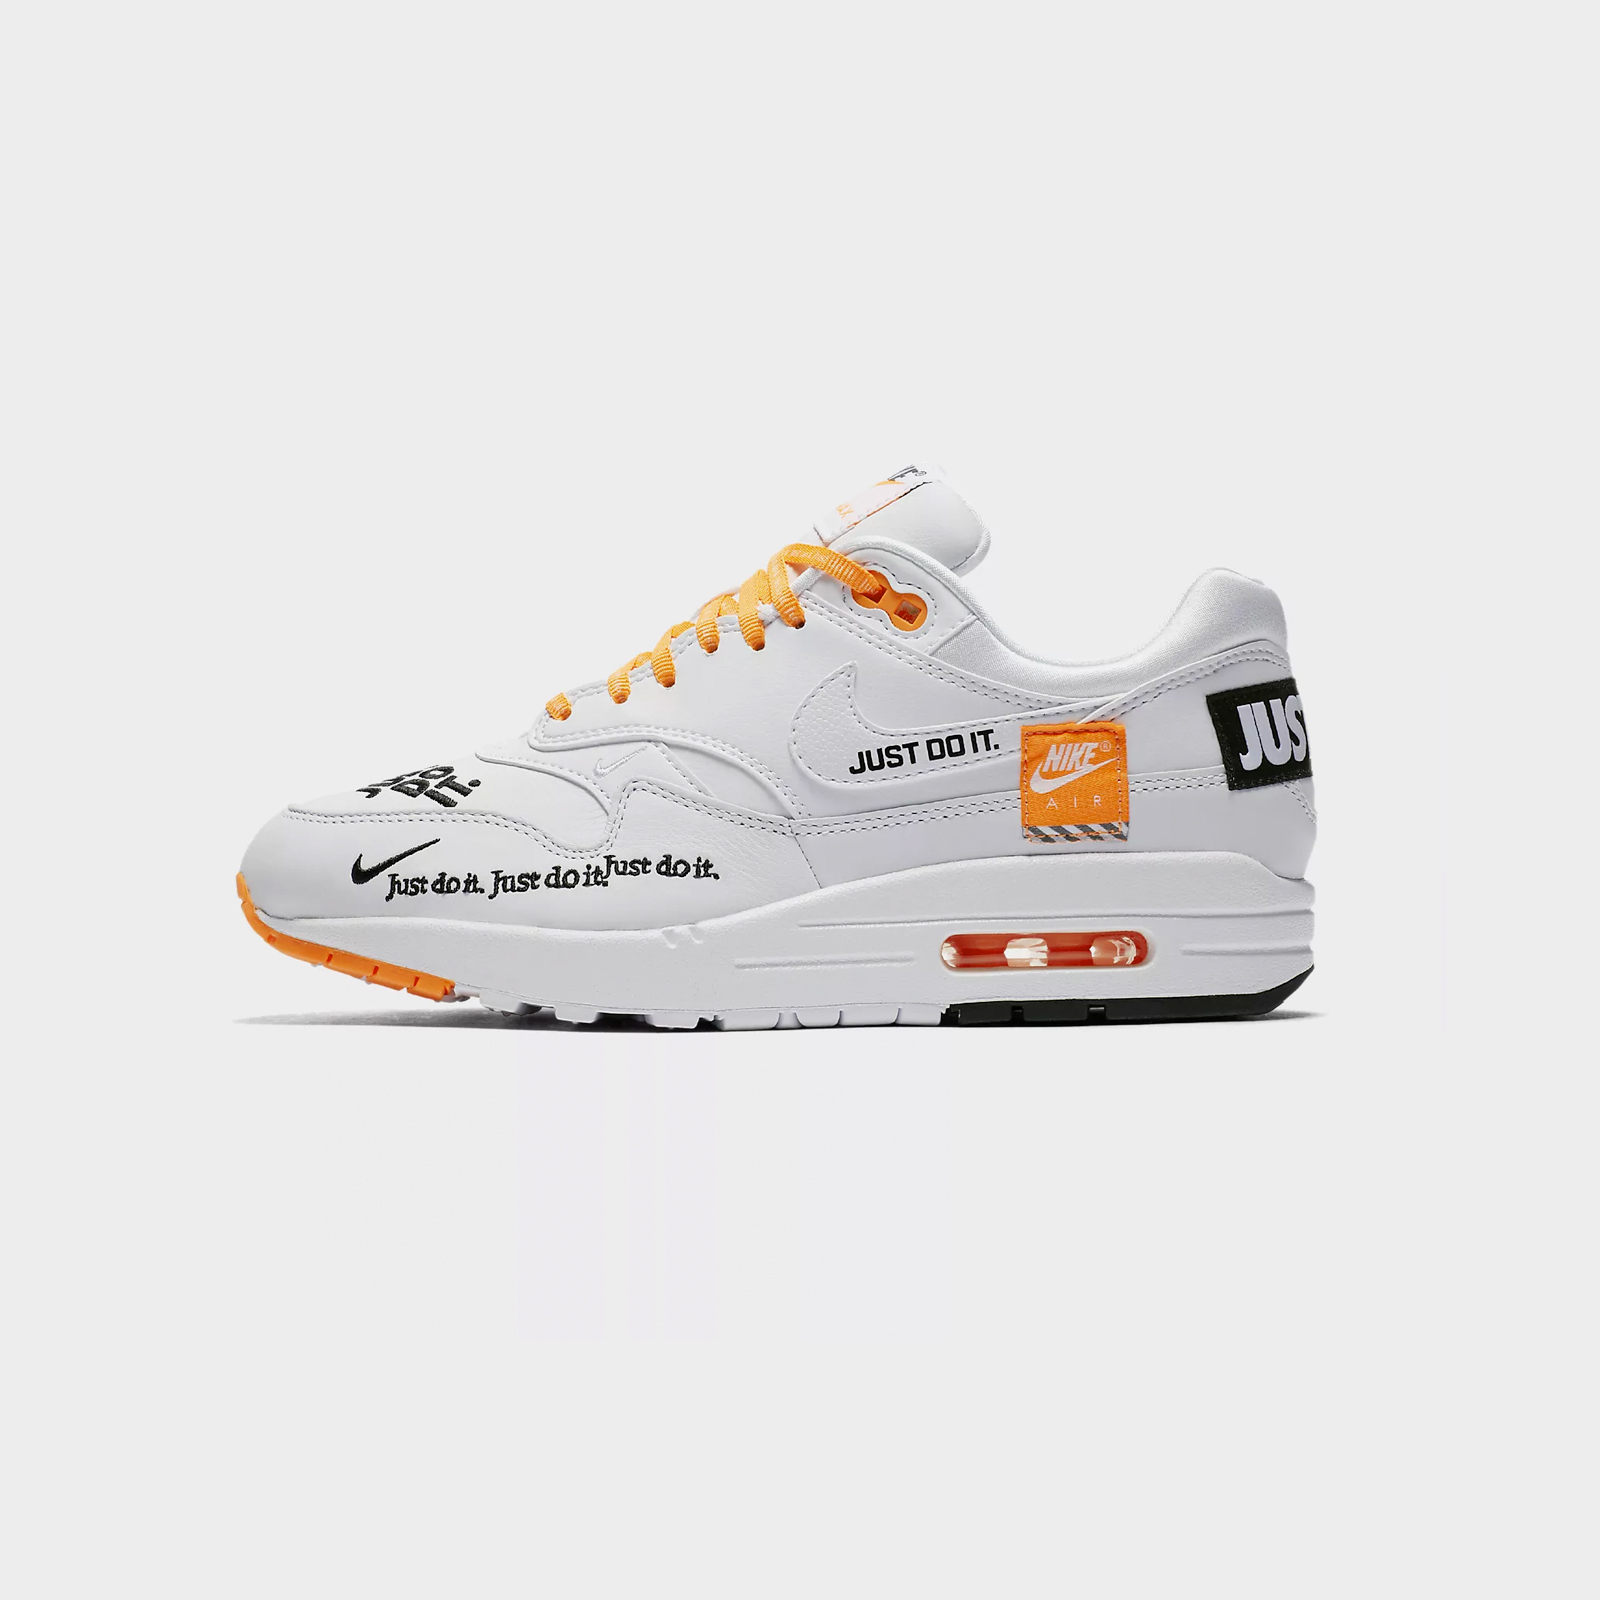 More Sneakers Nike Air Max 1 LX 'Just Do It' 'Total